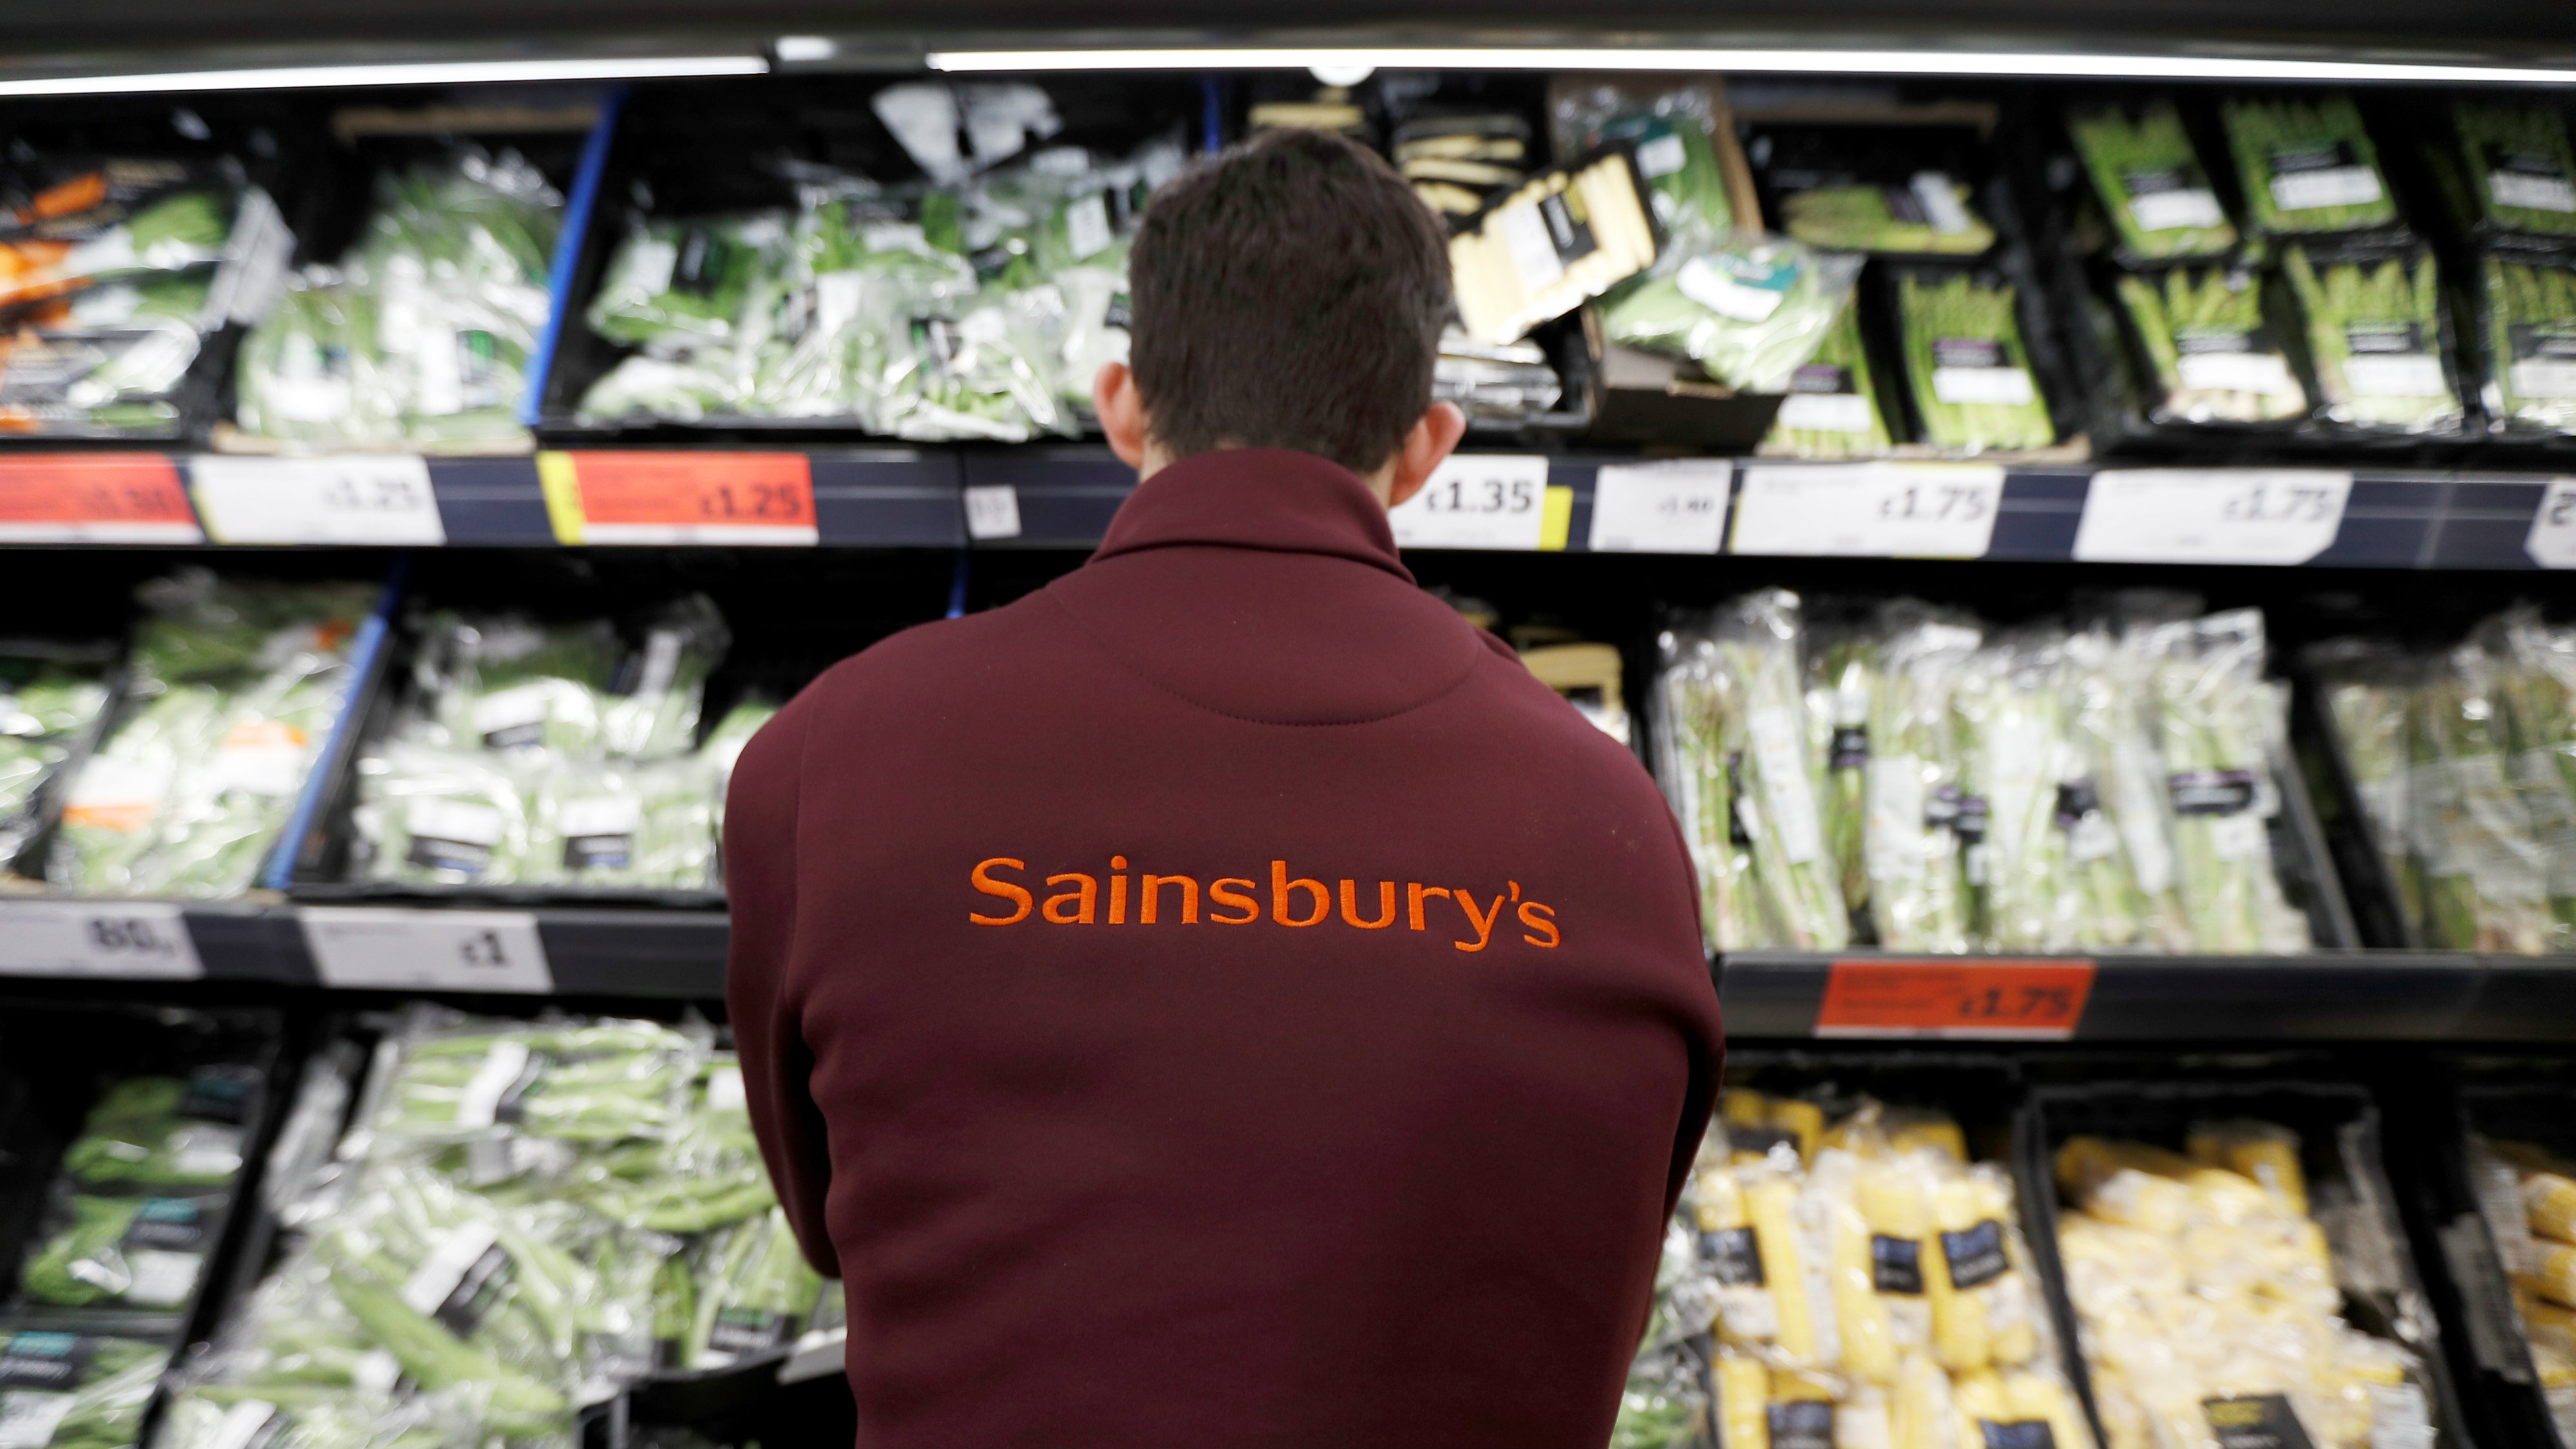 Asda and Sainsbury's in talks of a £10 billion merger deal